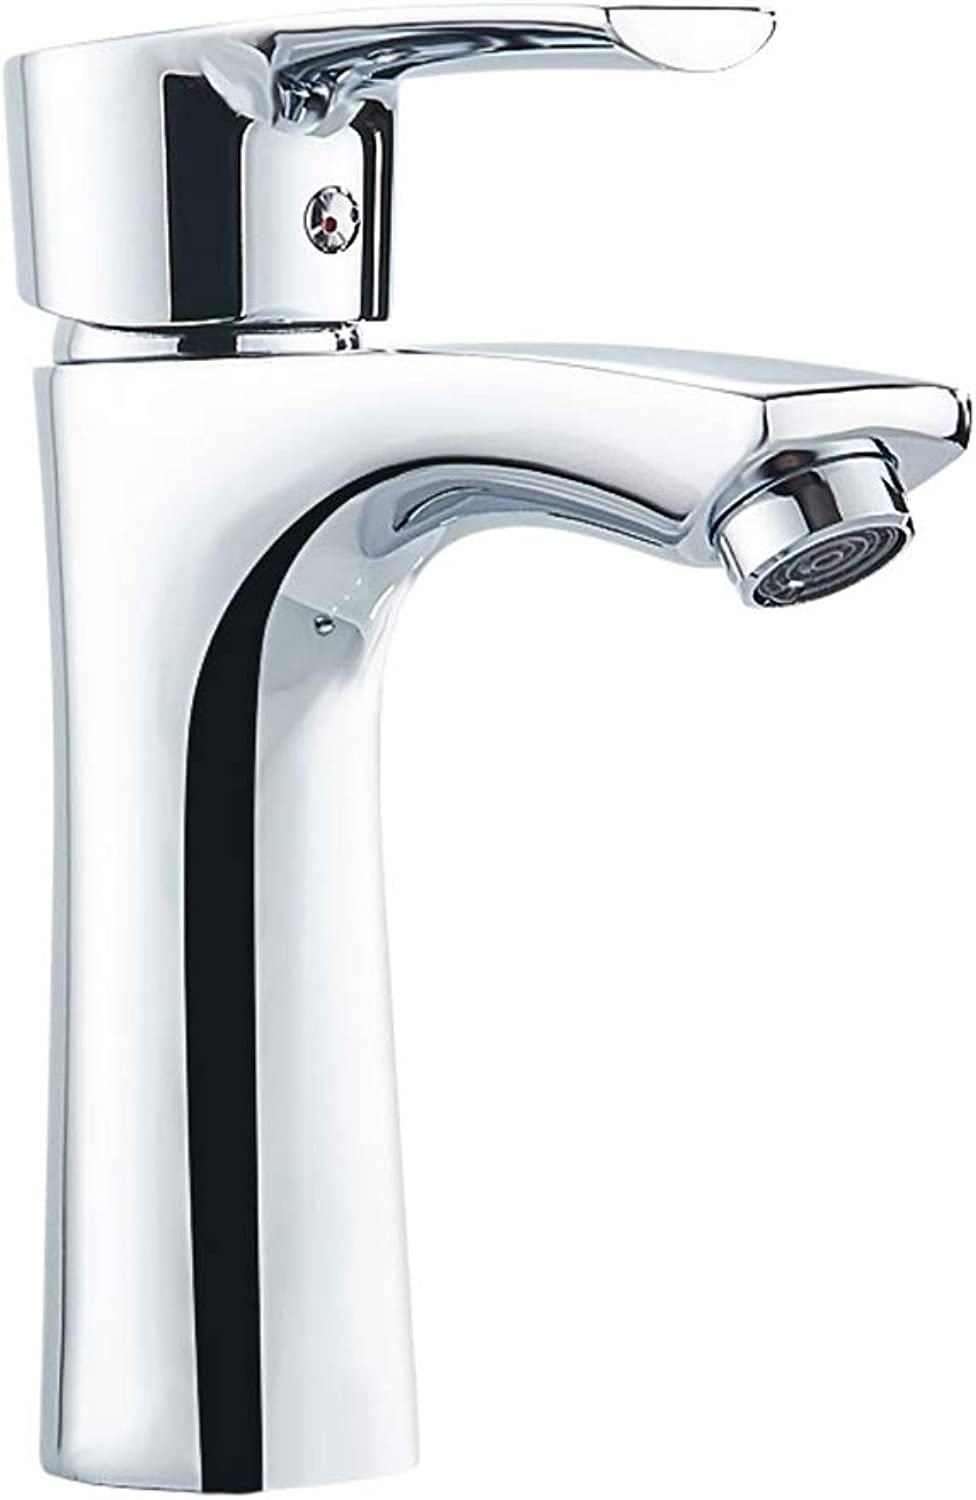 Water-tap, Bathroom Hot And Cold Copper Basin Wash Basin Thickened Basin Faucet